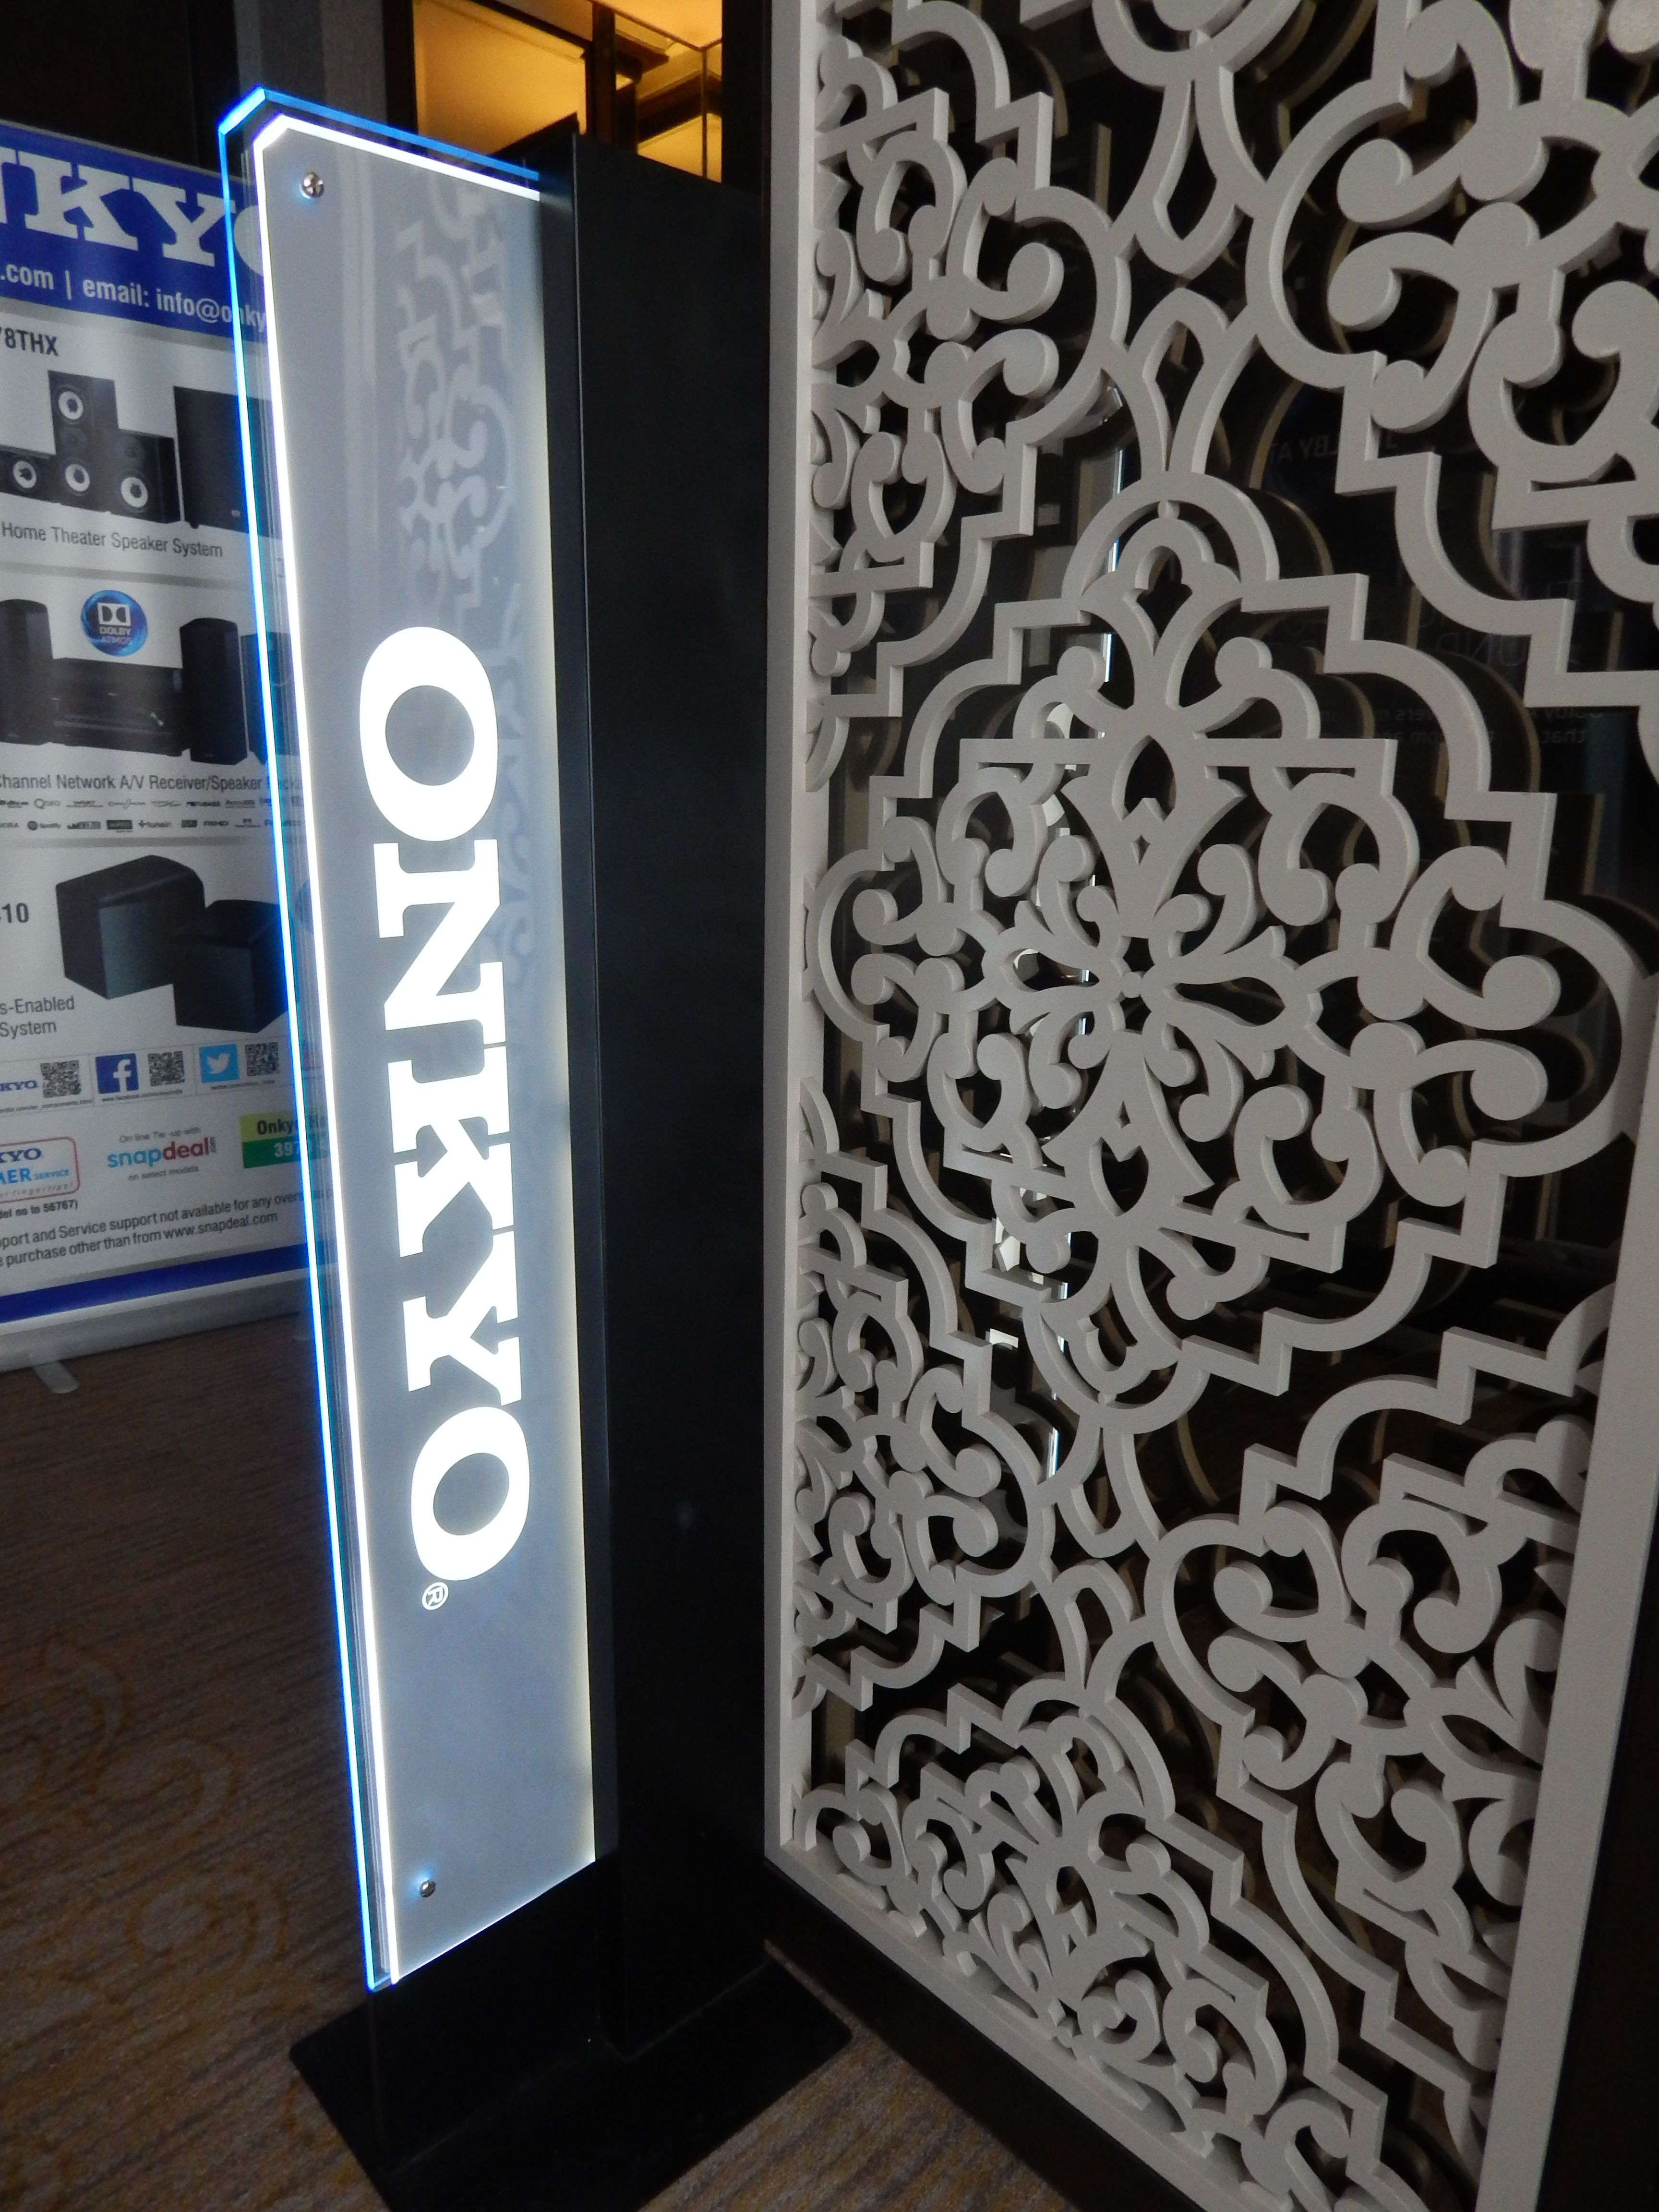 Pin by Onkyo India on What Hi-Fi Show - Mumbai | Mumbai, India